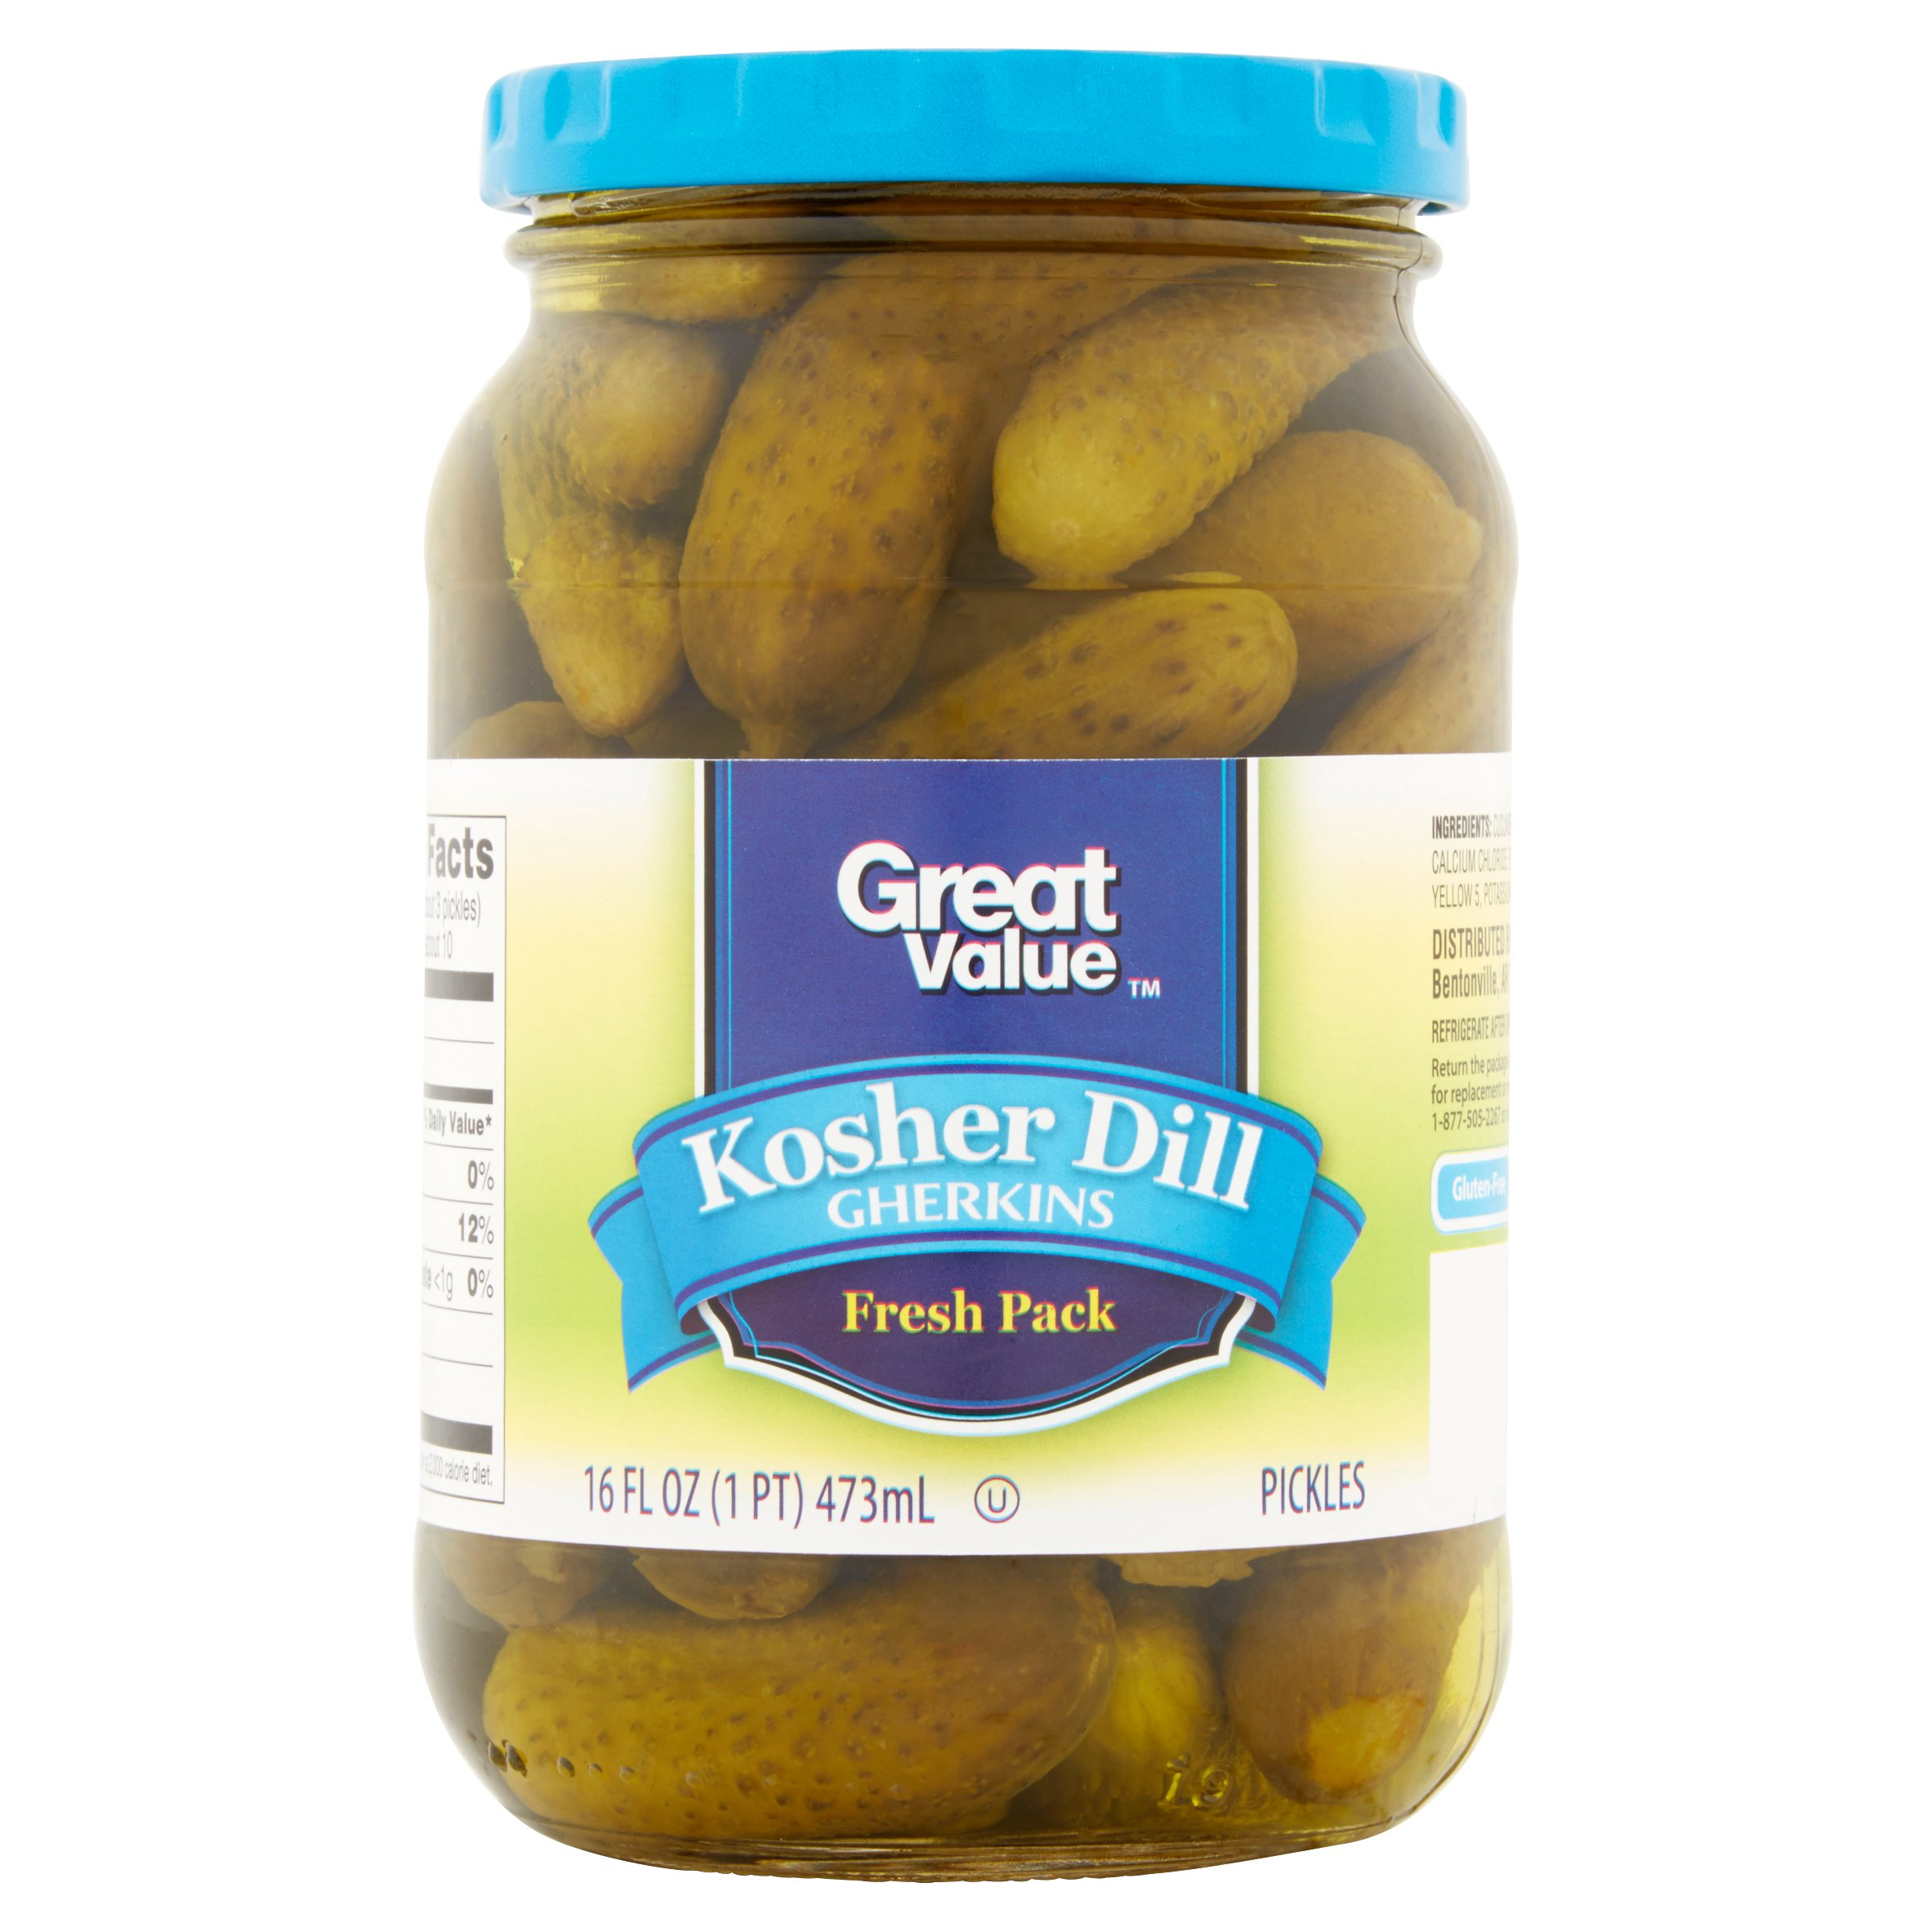 Great Value Kosher Dill Gherkins Pickles Fresh Pack 16 fl oz by Wal-Mart Stores, Inc.